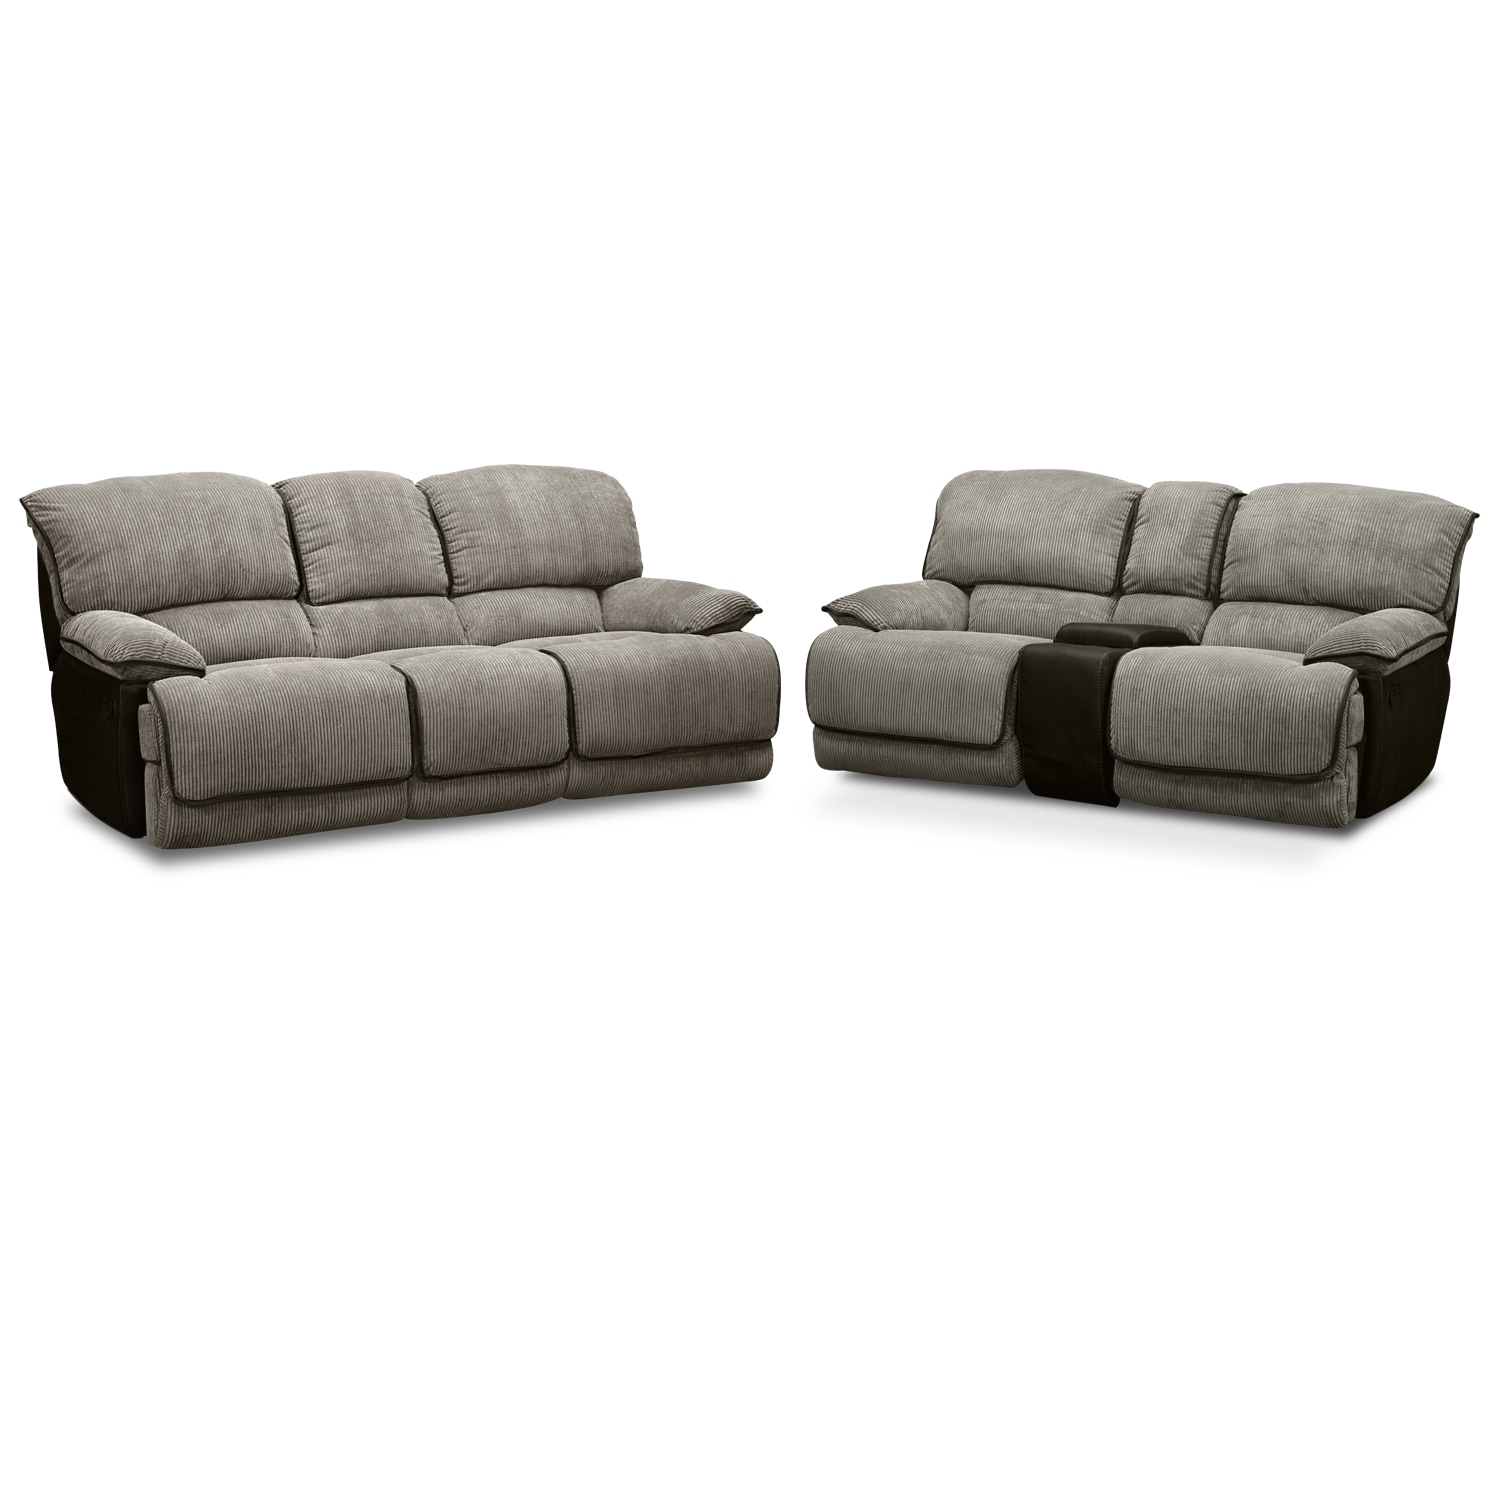 value city furniture marco chaise sofa clic clac sofas shop living room |